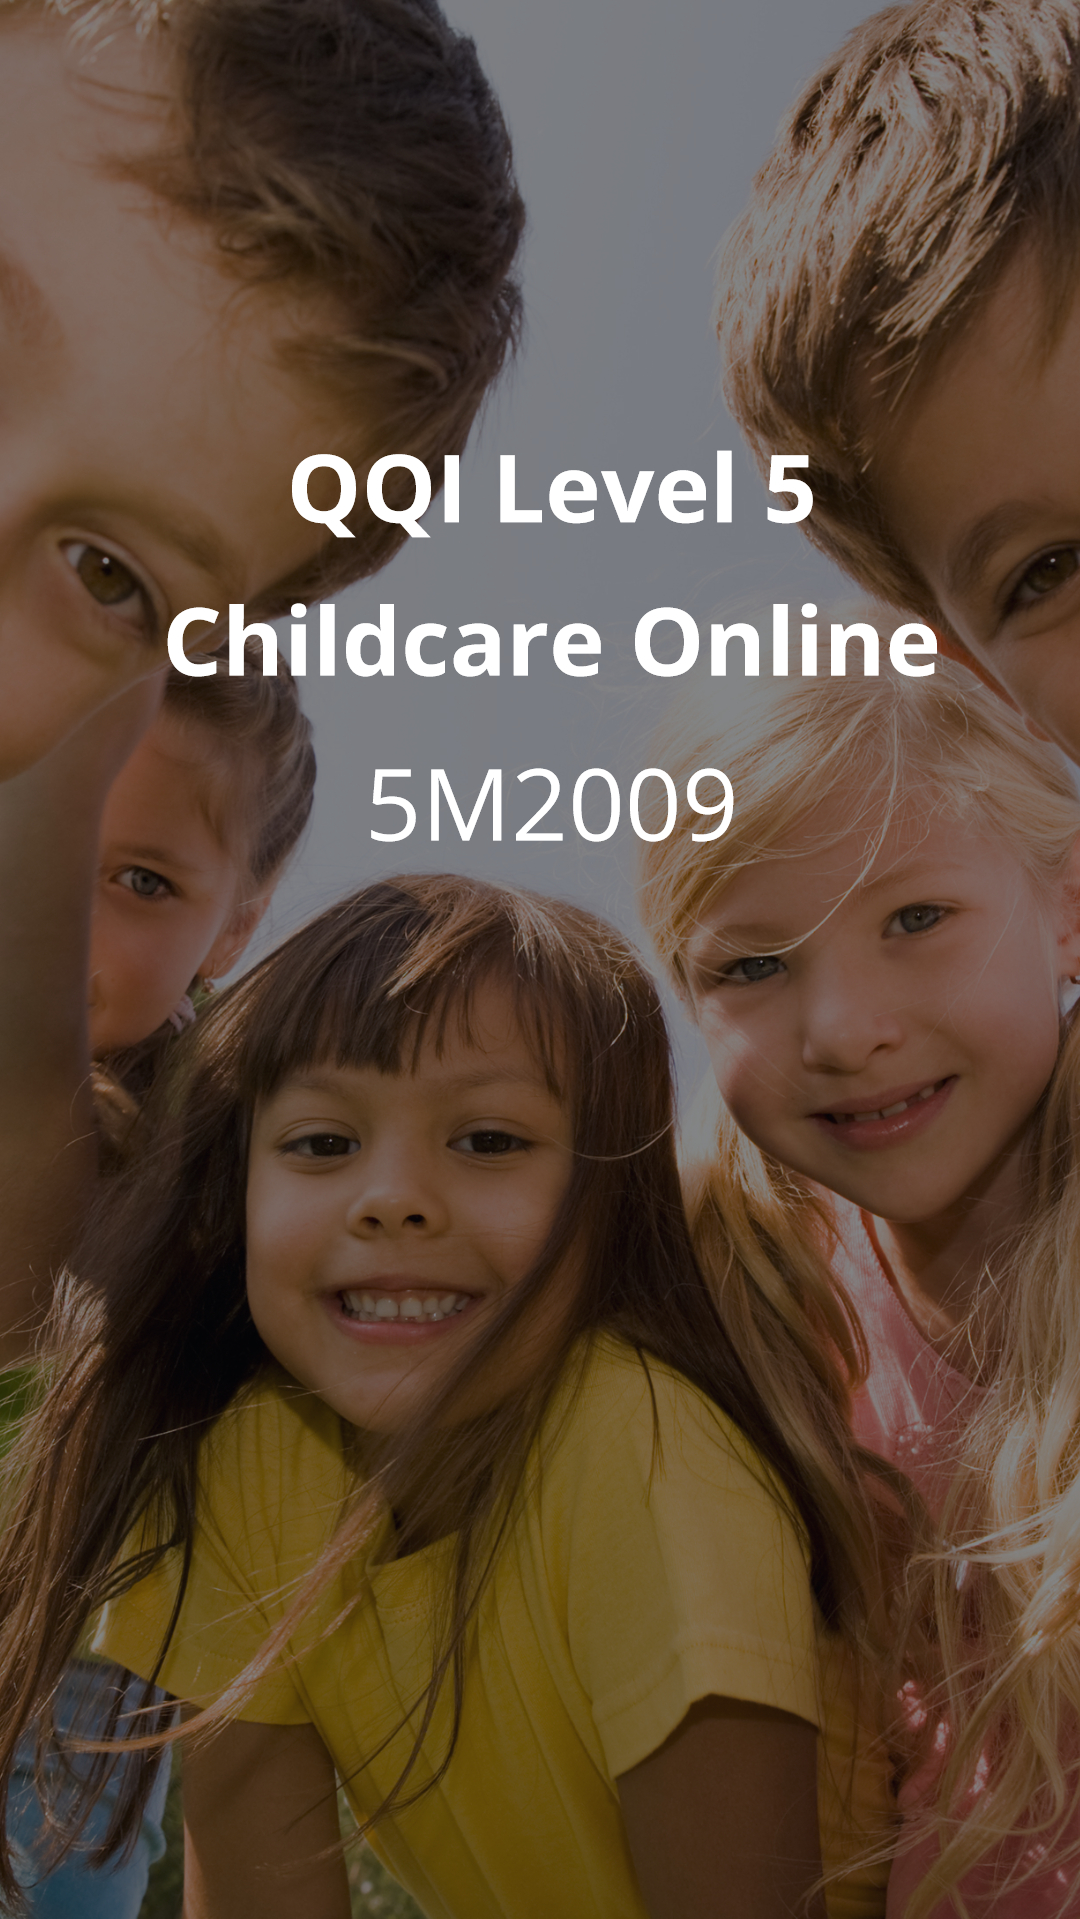 level 5 childcare